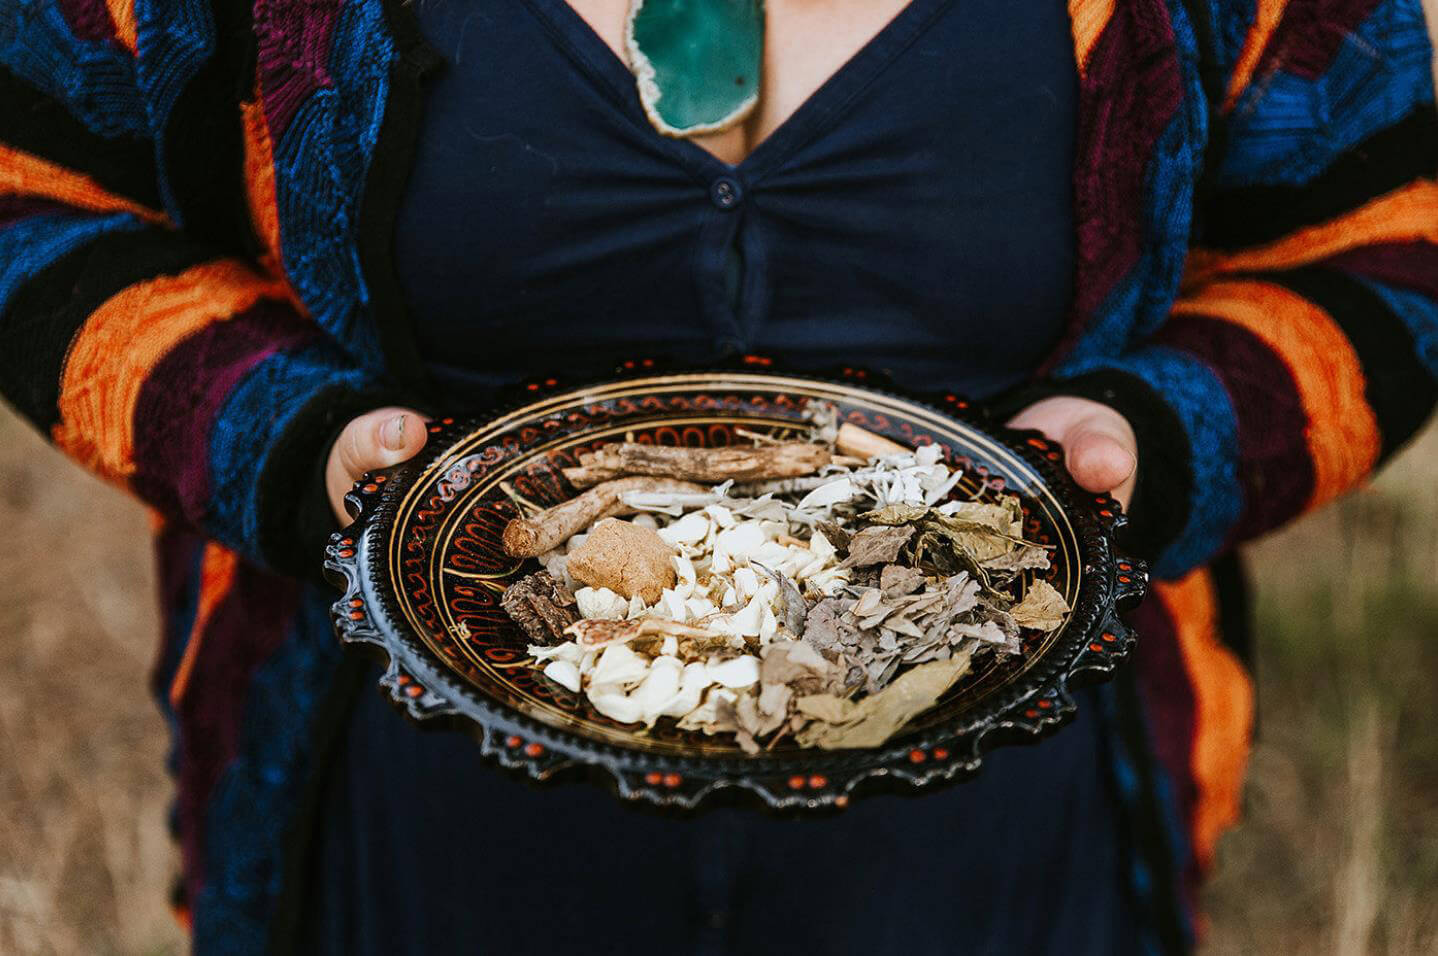 Woman holding a bowl of herbs and rustic